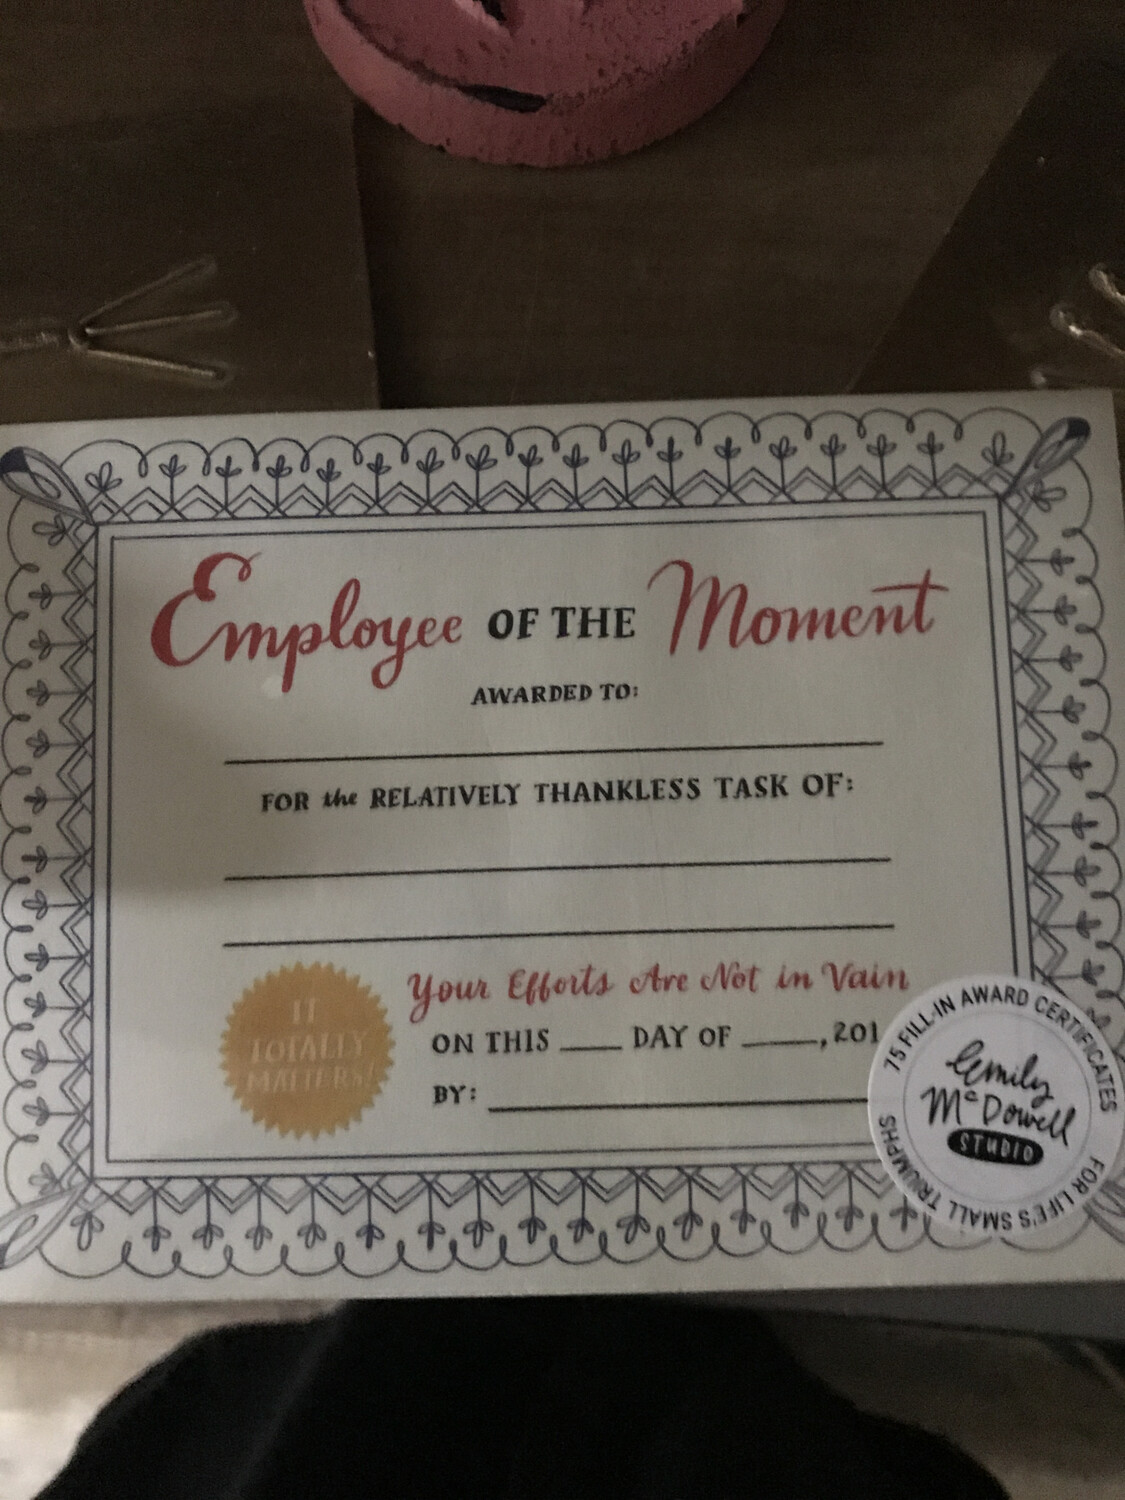 Employee of the Moment